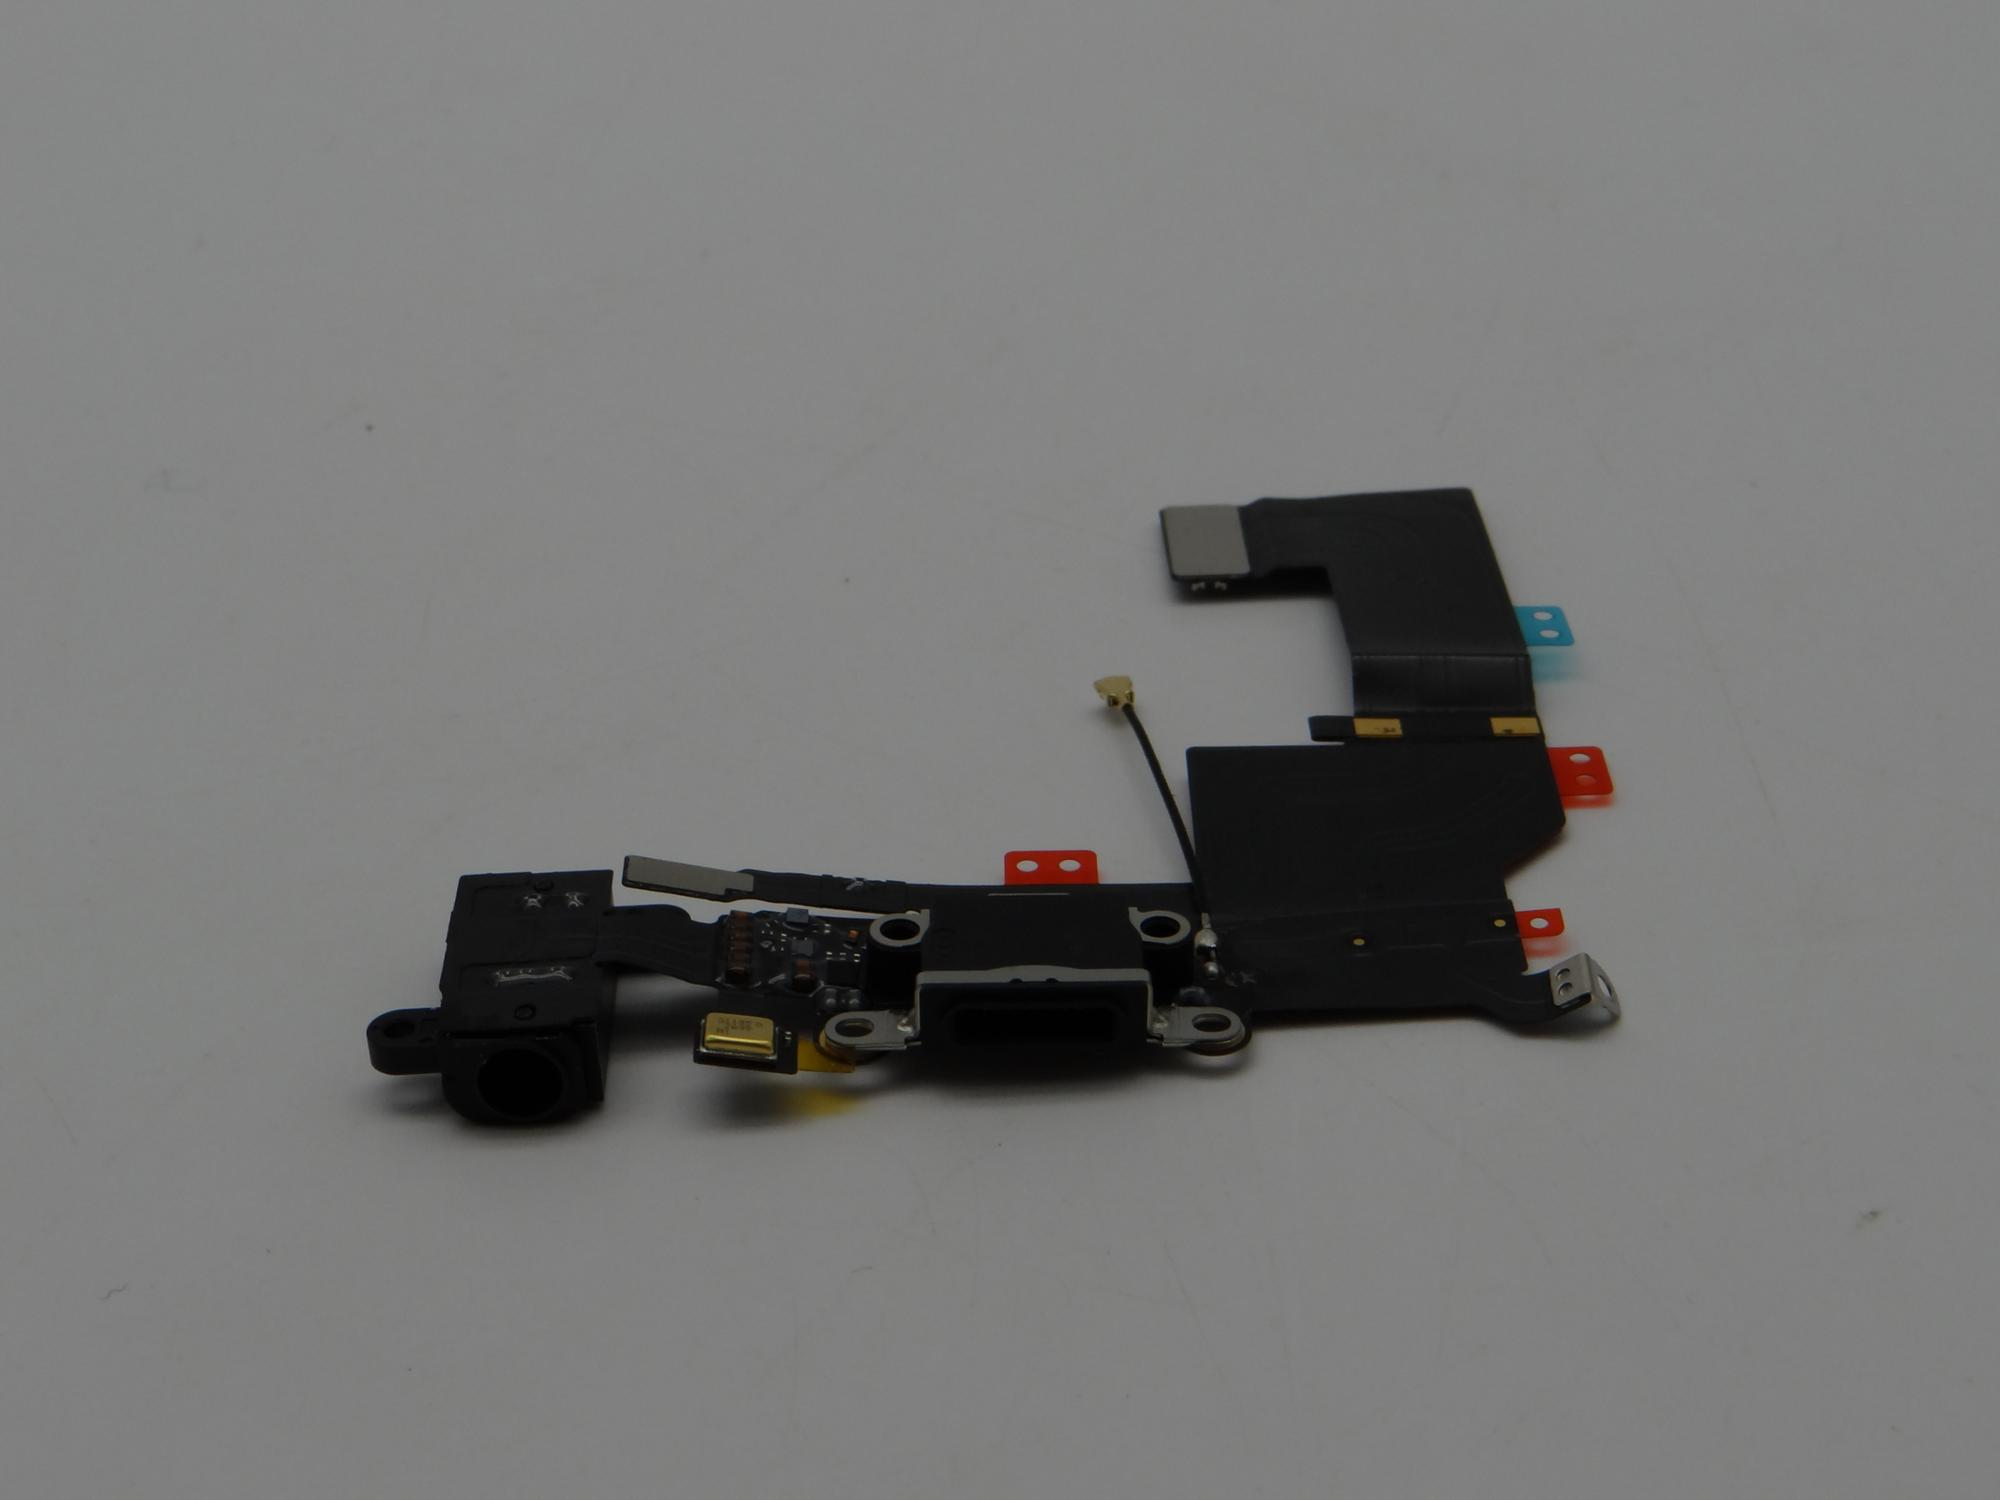 Headphone Audio USB Dock Charger Connector Flex Cable for iPhone 5S color in black